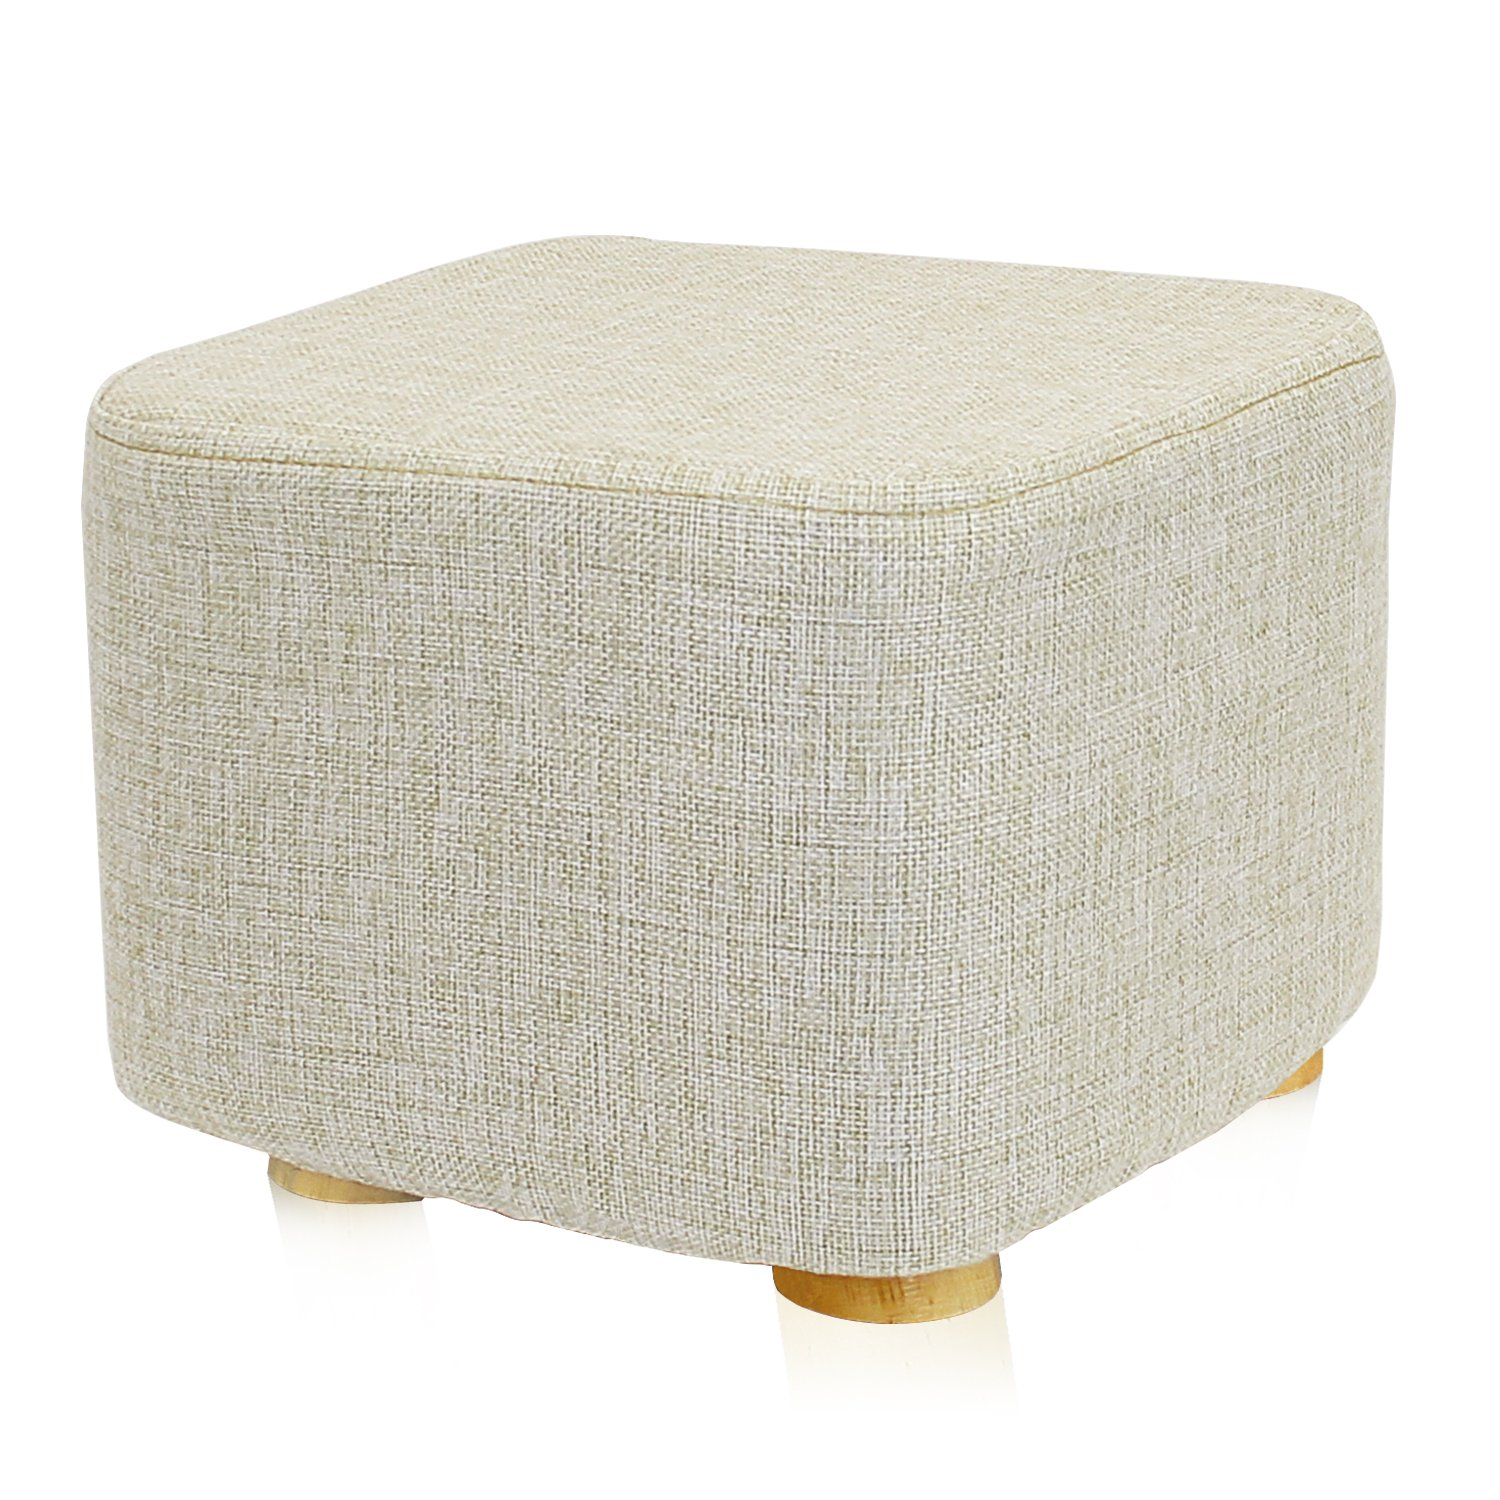 DL furniture - Square Ottoman Foot Stool, 4 Leg Stands, Short Leg, Square Shape | Linen Fabric, Beige